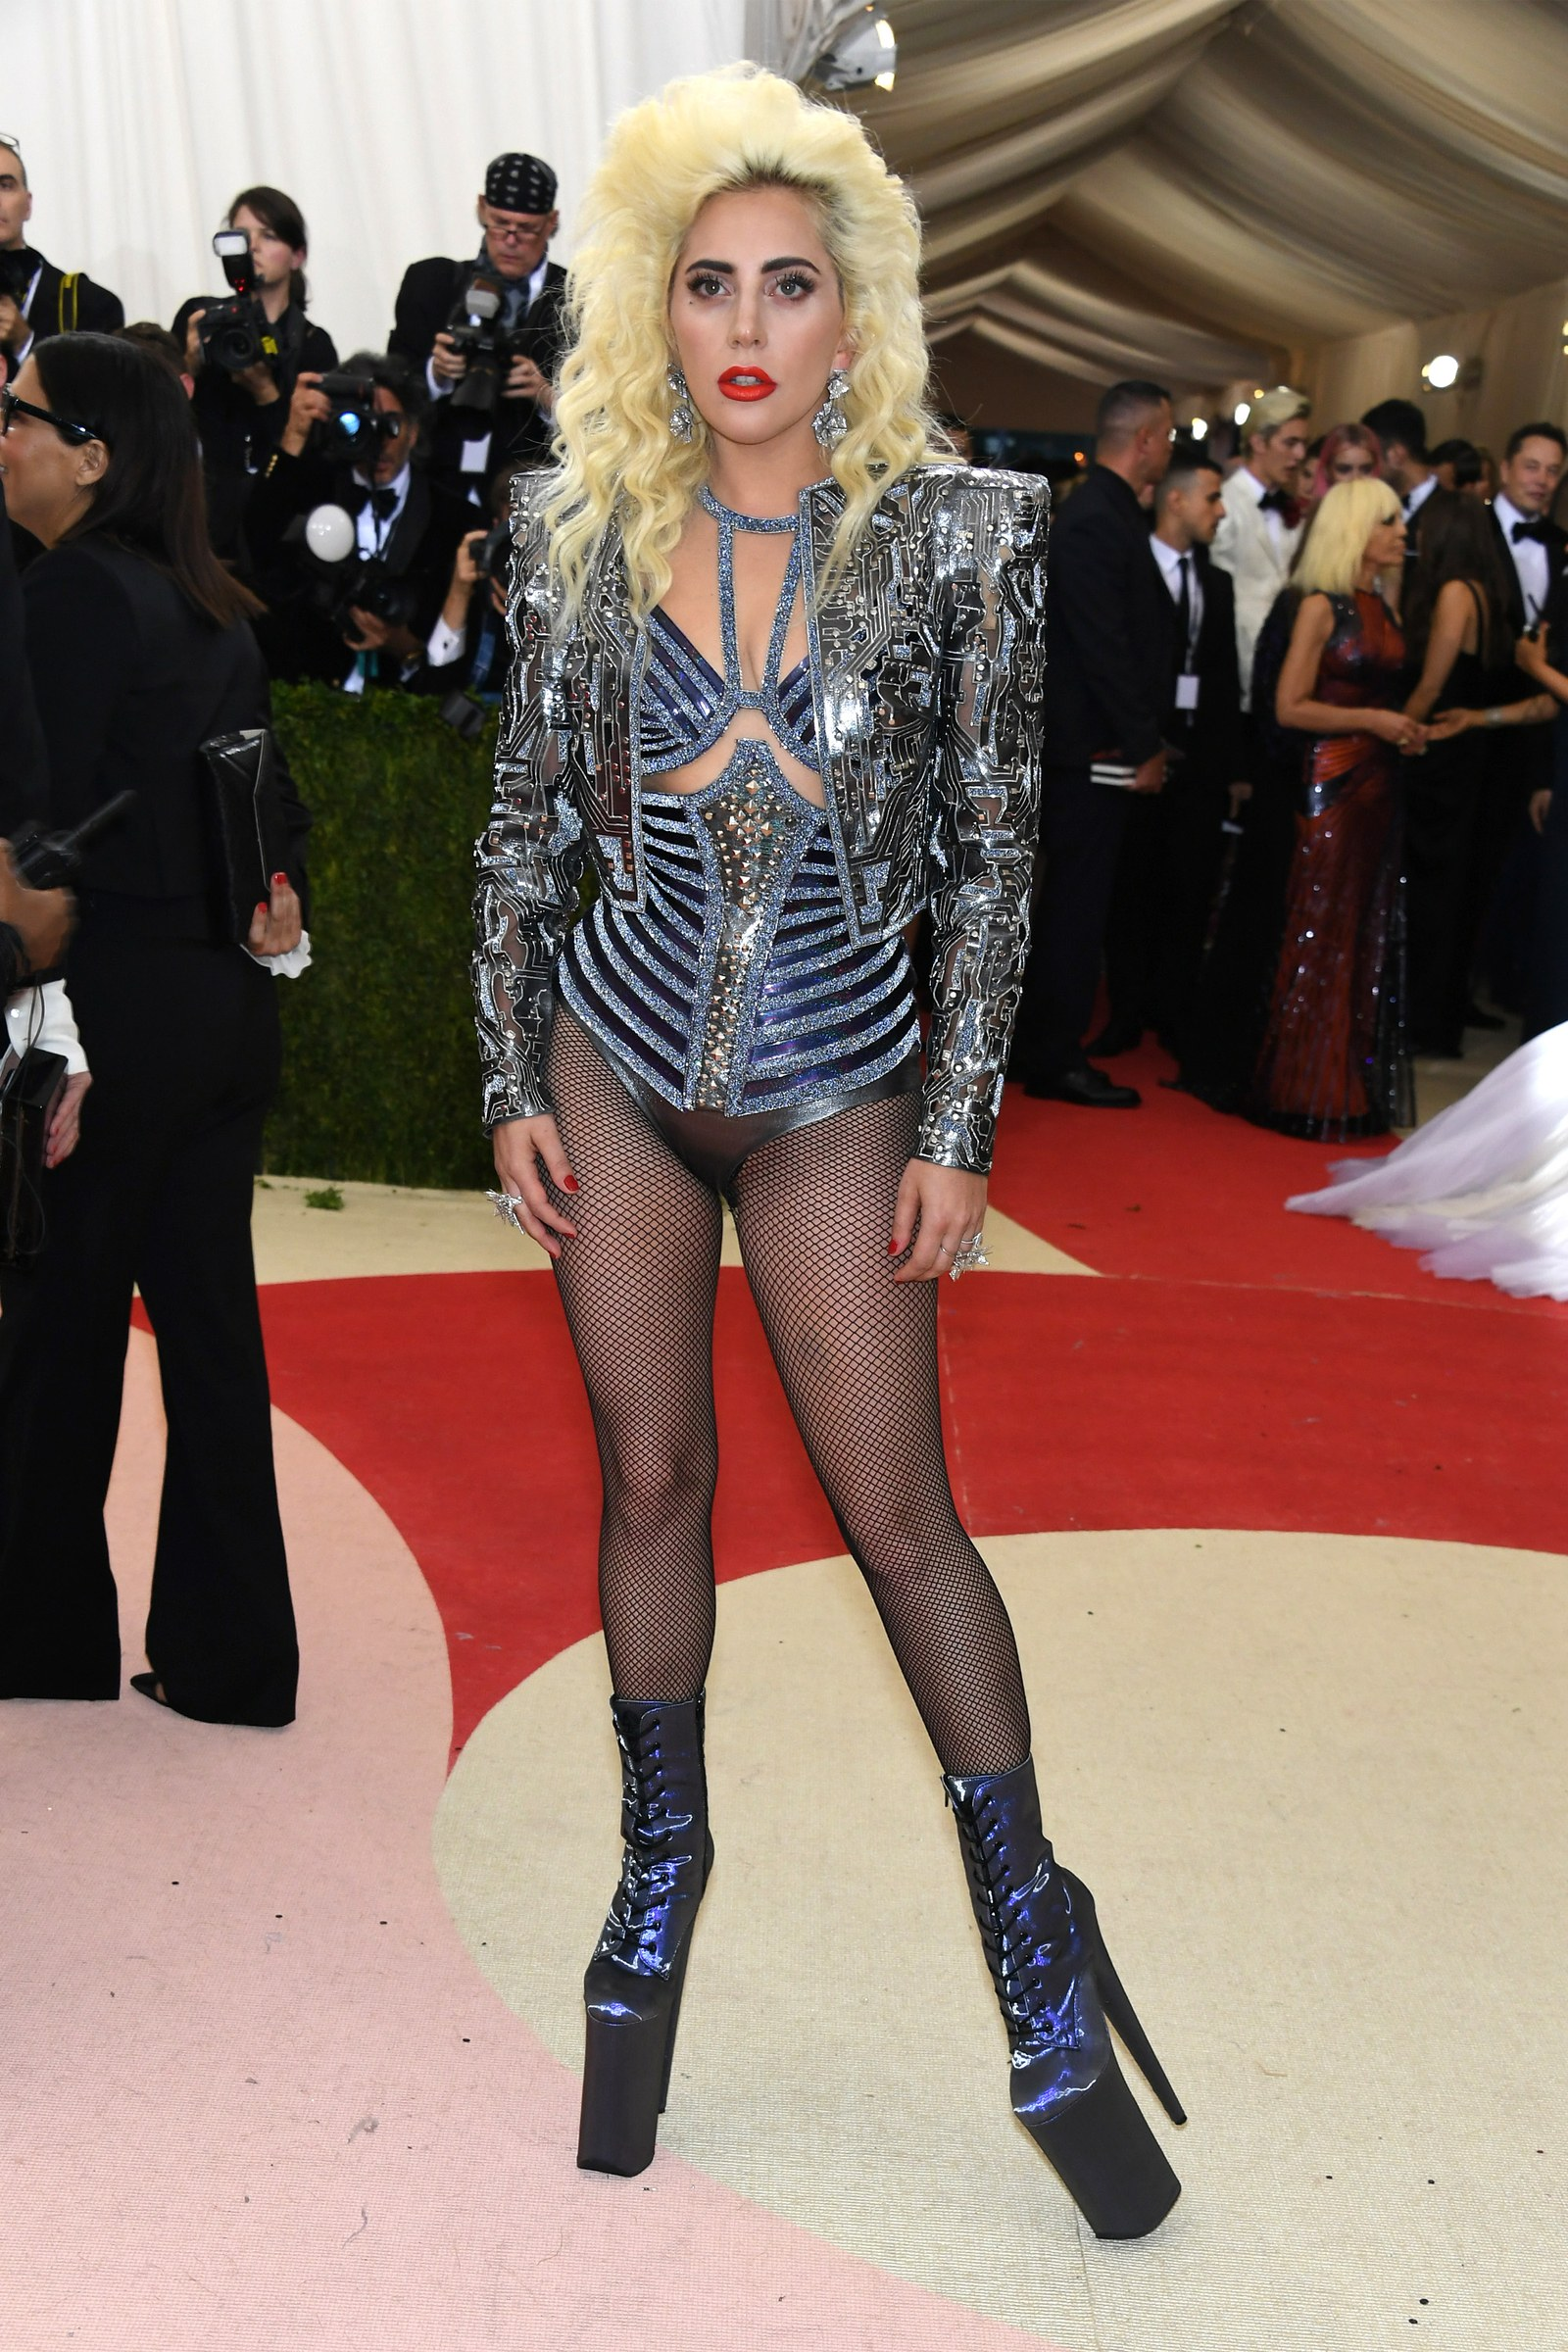 iconic-met-gala-looks-2016-lady-gaga.jpg